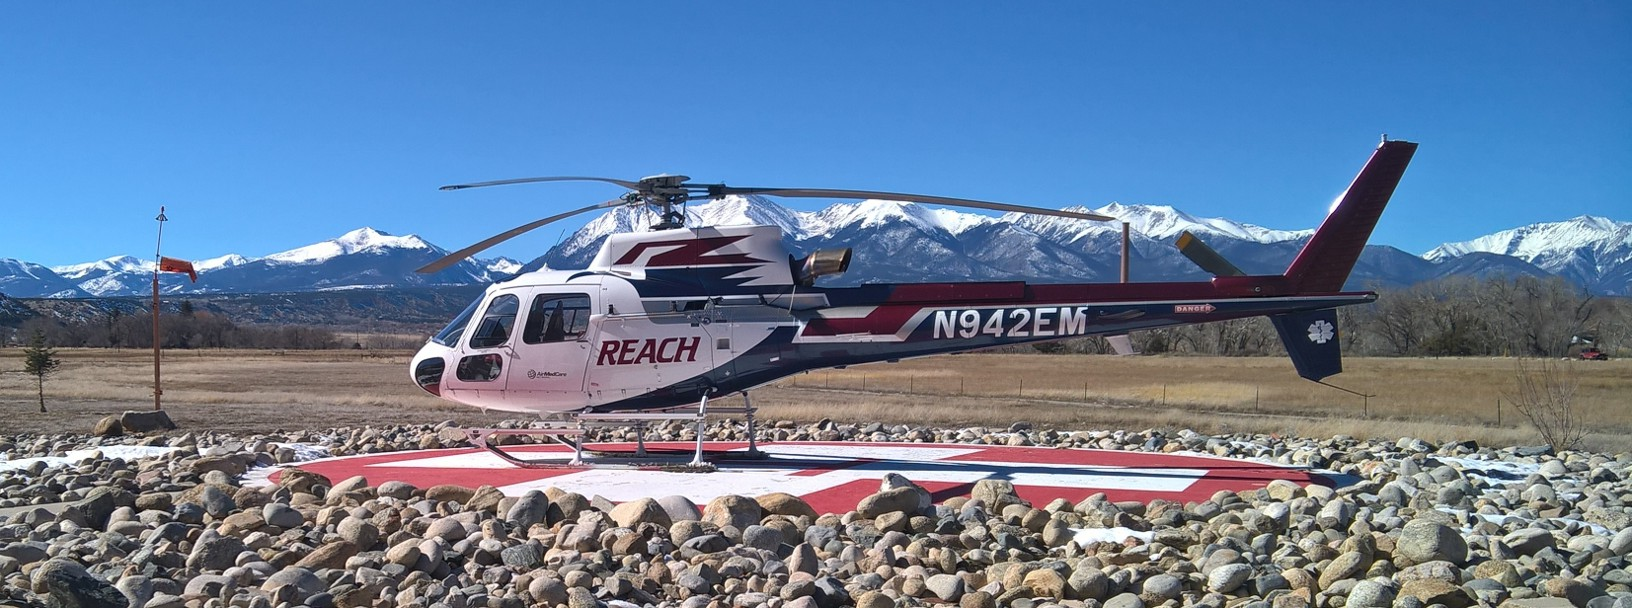 Helicopter pics (1) (1)